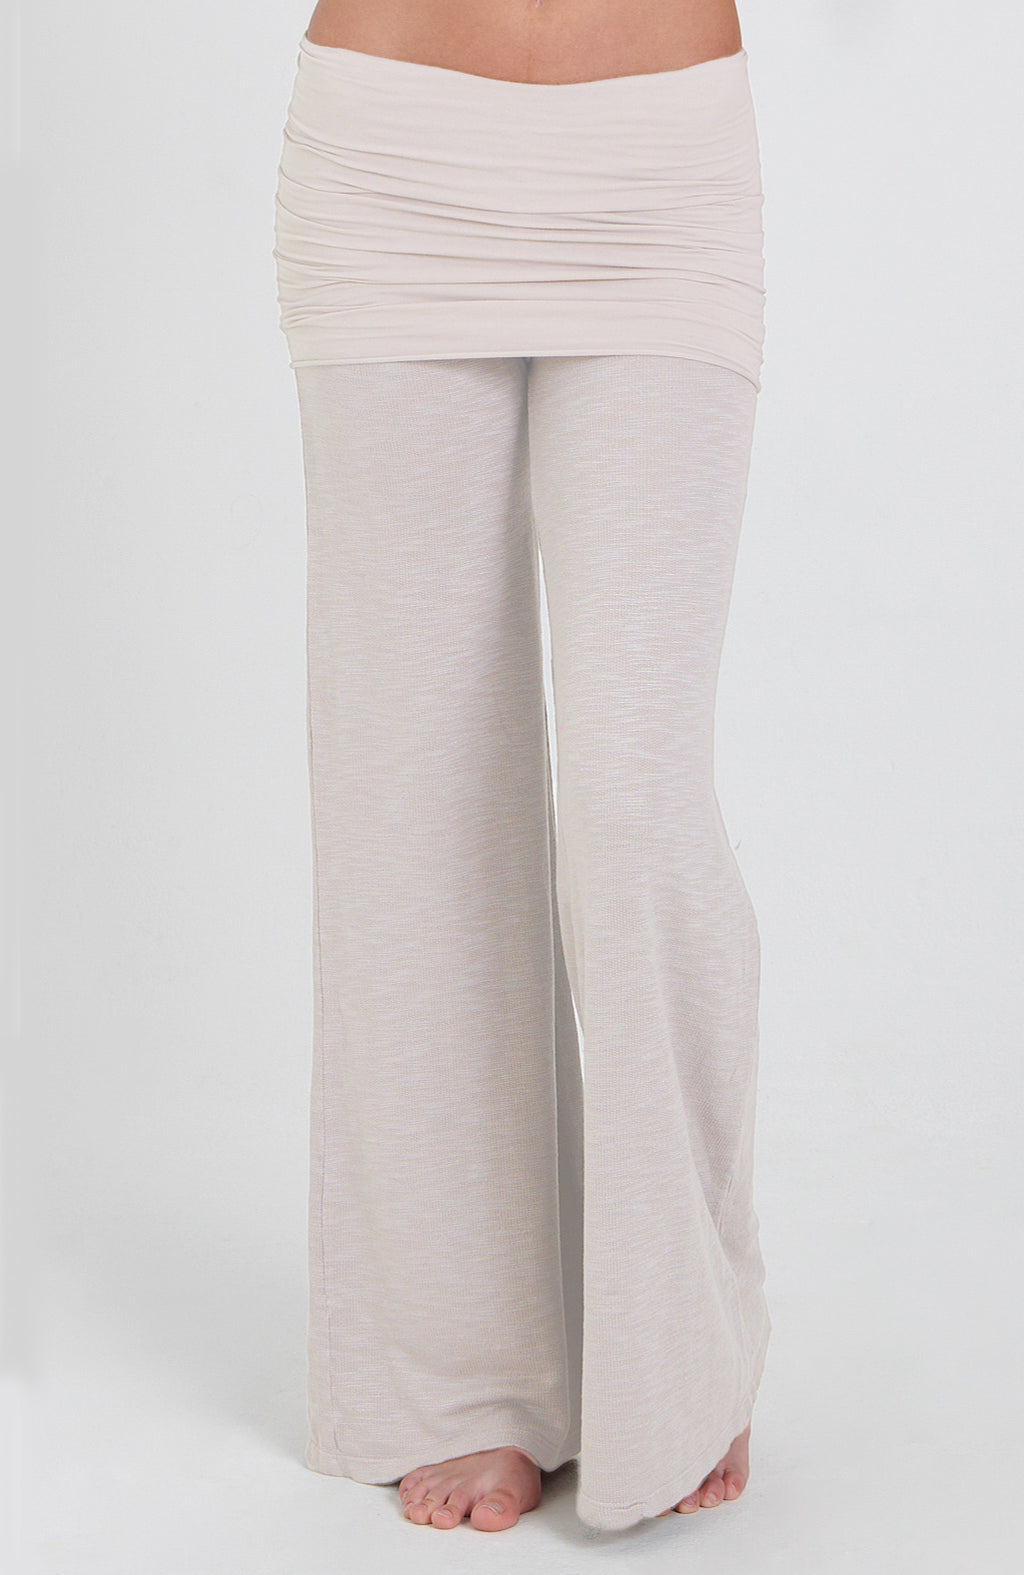 Surf Nomad Pant in Cream